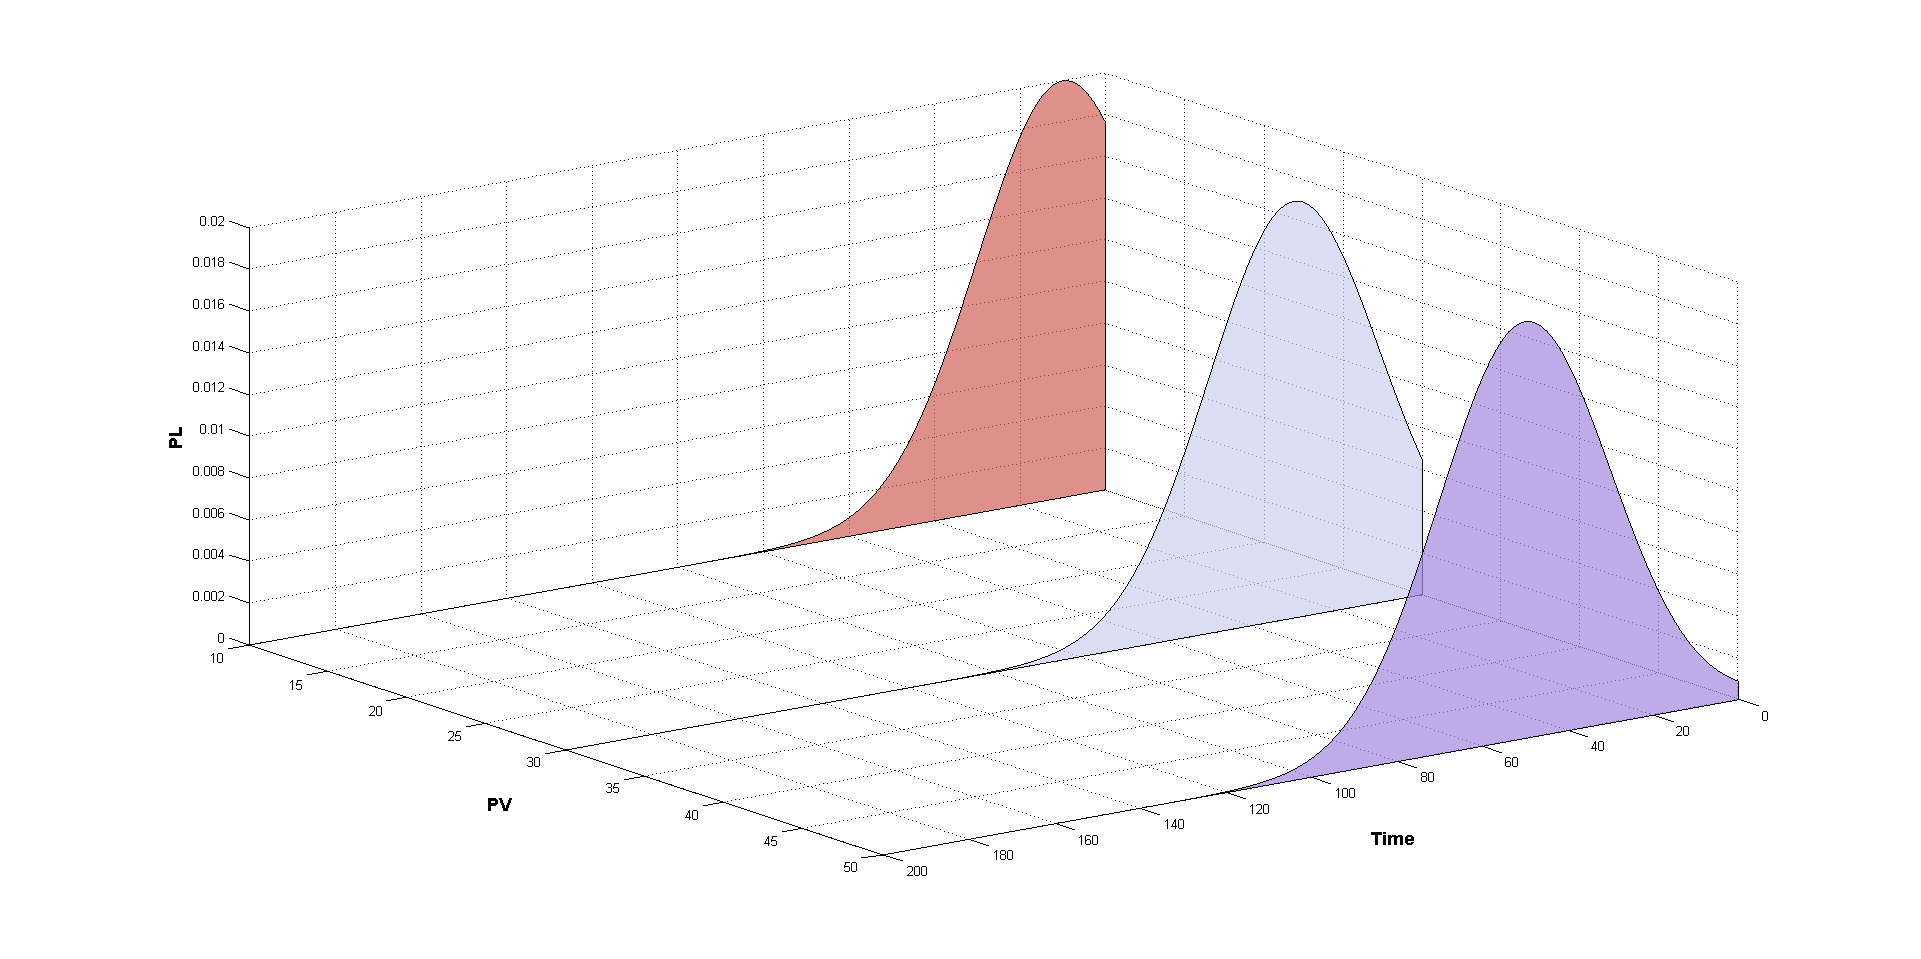 How to change colour in waterfall plot matlab answers matlab figure colordef white setgcf color 1 1 1 h waterfallxtyzerossizey seth facecolor flat seth edgecolor k seth ccuart Gallery